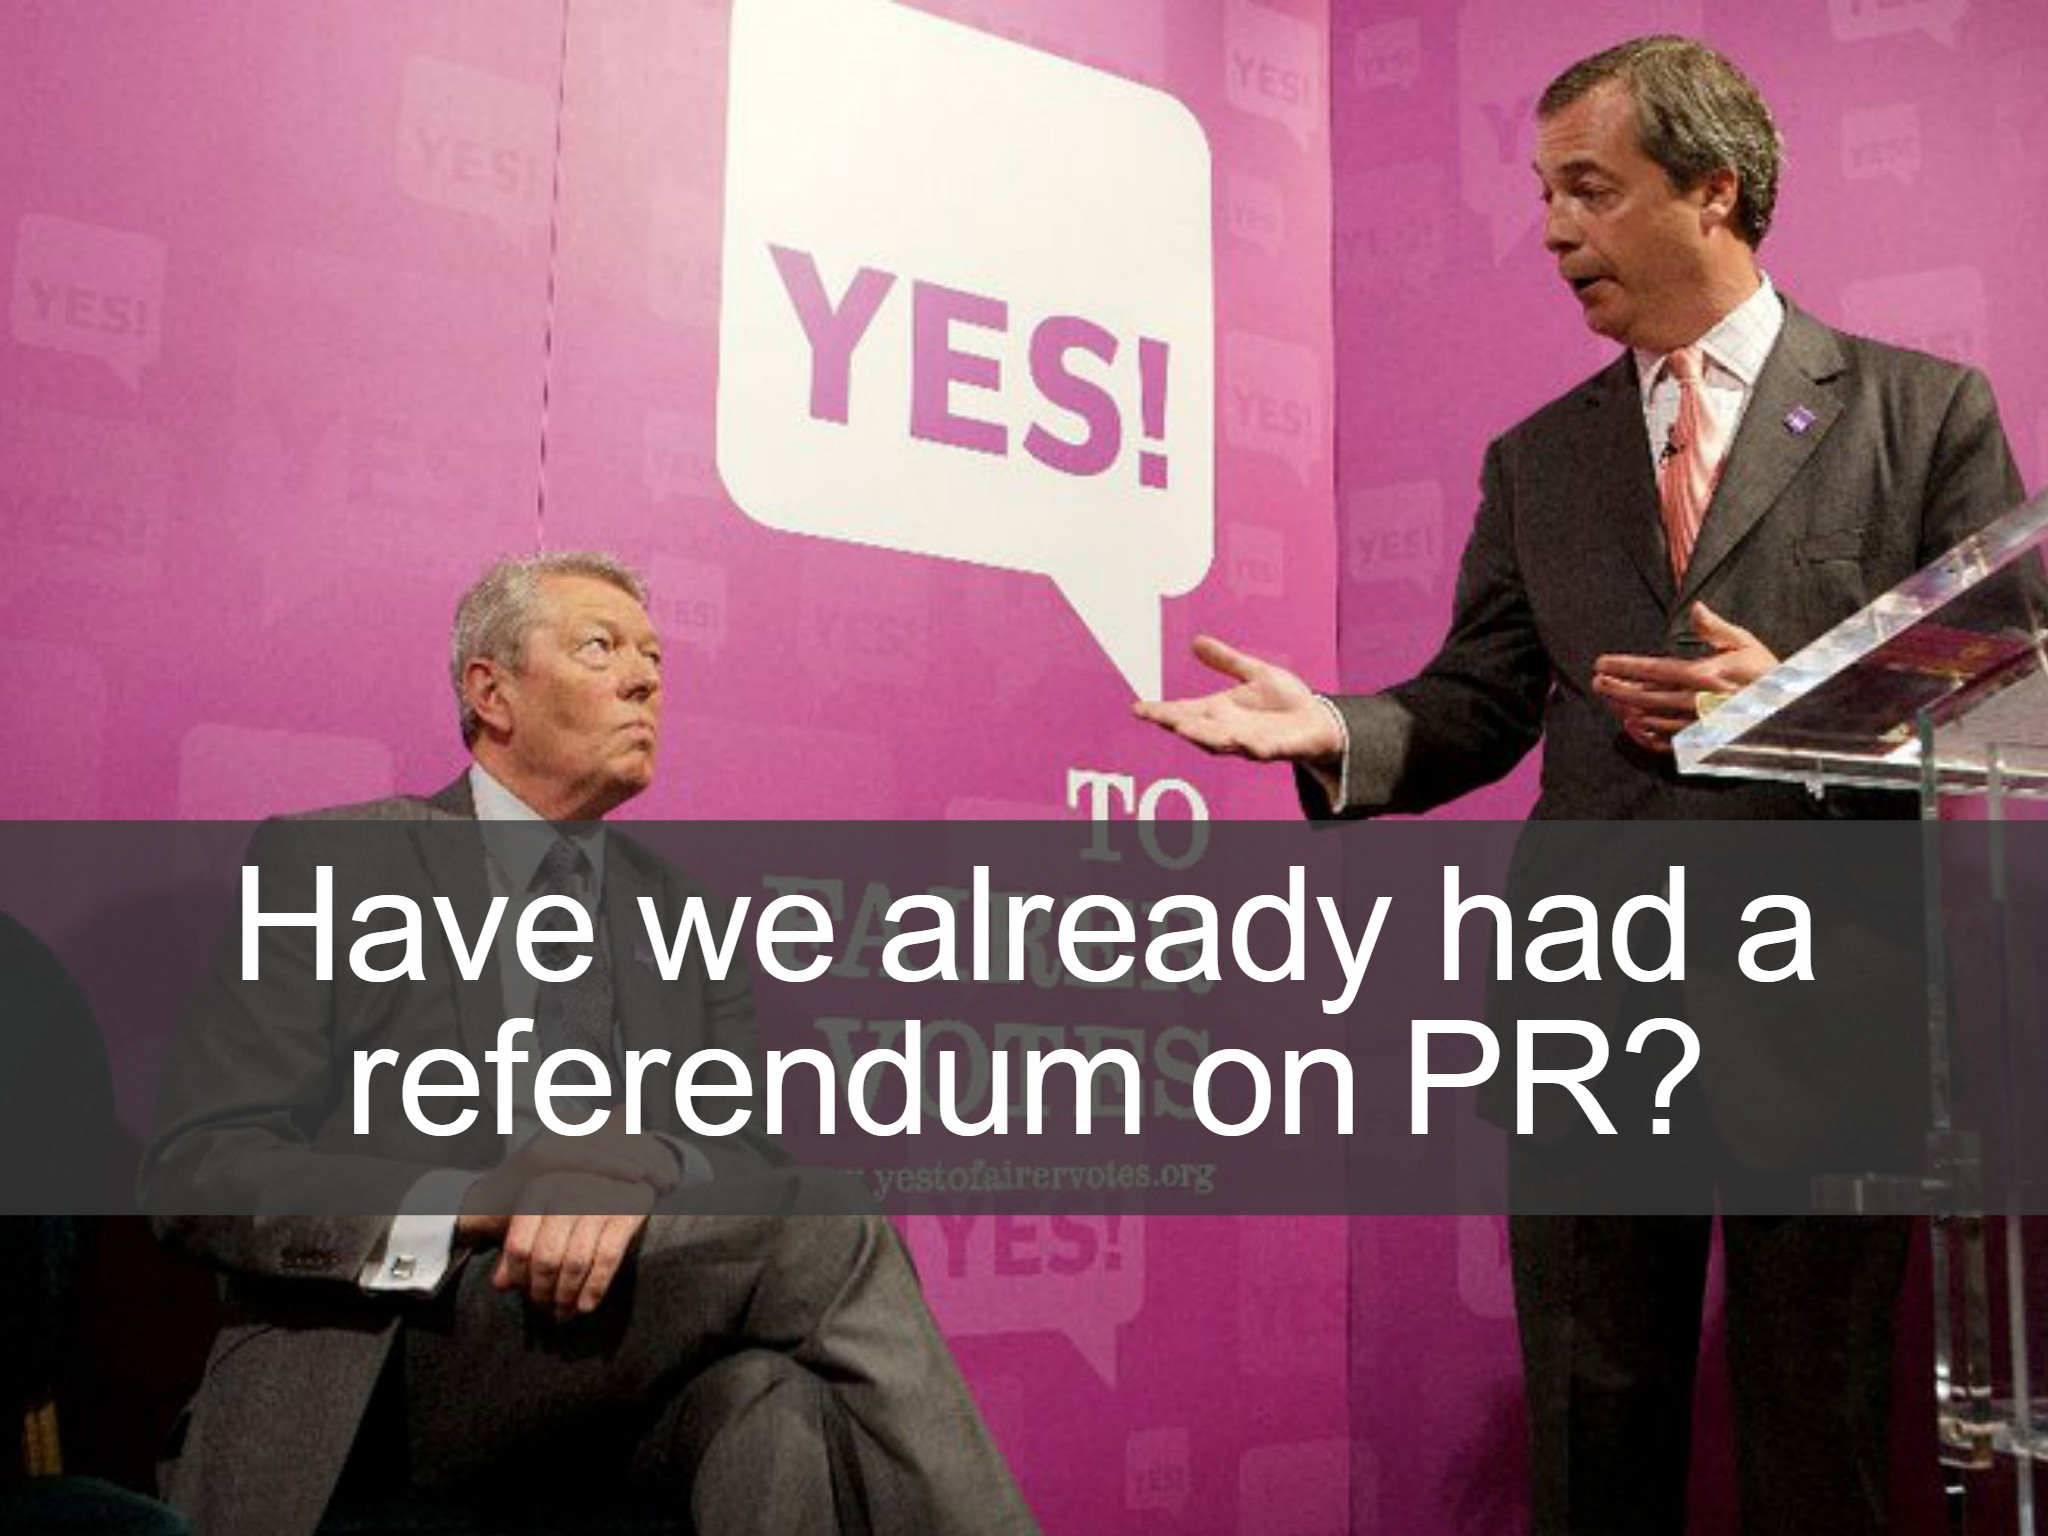 "No. It's a common myth but the fact is the UK has never had a referendum on whether to change to a proportional voting system. The system put forward in the 2011 referendum was the Alternative Vote. This is not a proportional system, and shares the problems caused by disproportionality which afflict First Past the Post. David Cameron once said: ""I'm here today to explain as clearly as I can why AV is completely the wrong reform…let me take on this myth that AV is more fair and more proportional than the system we have currently""."